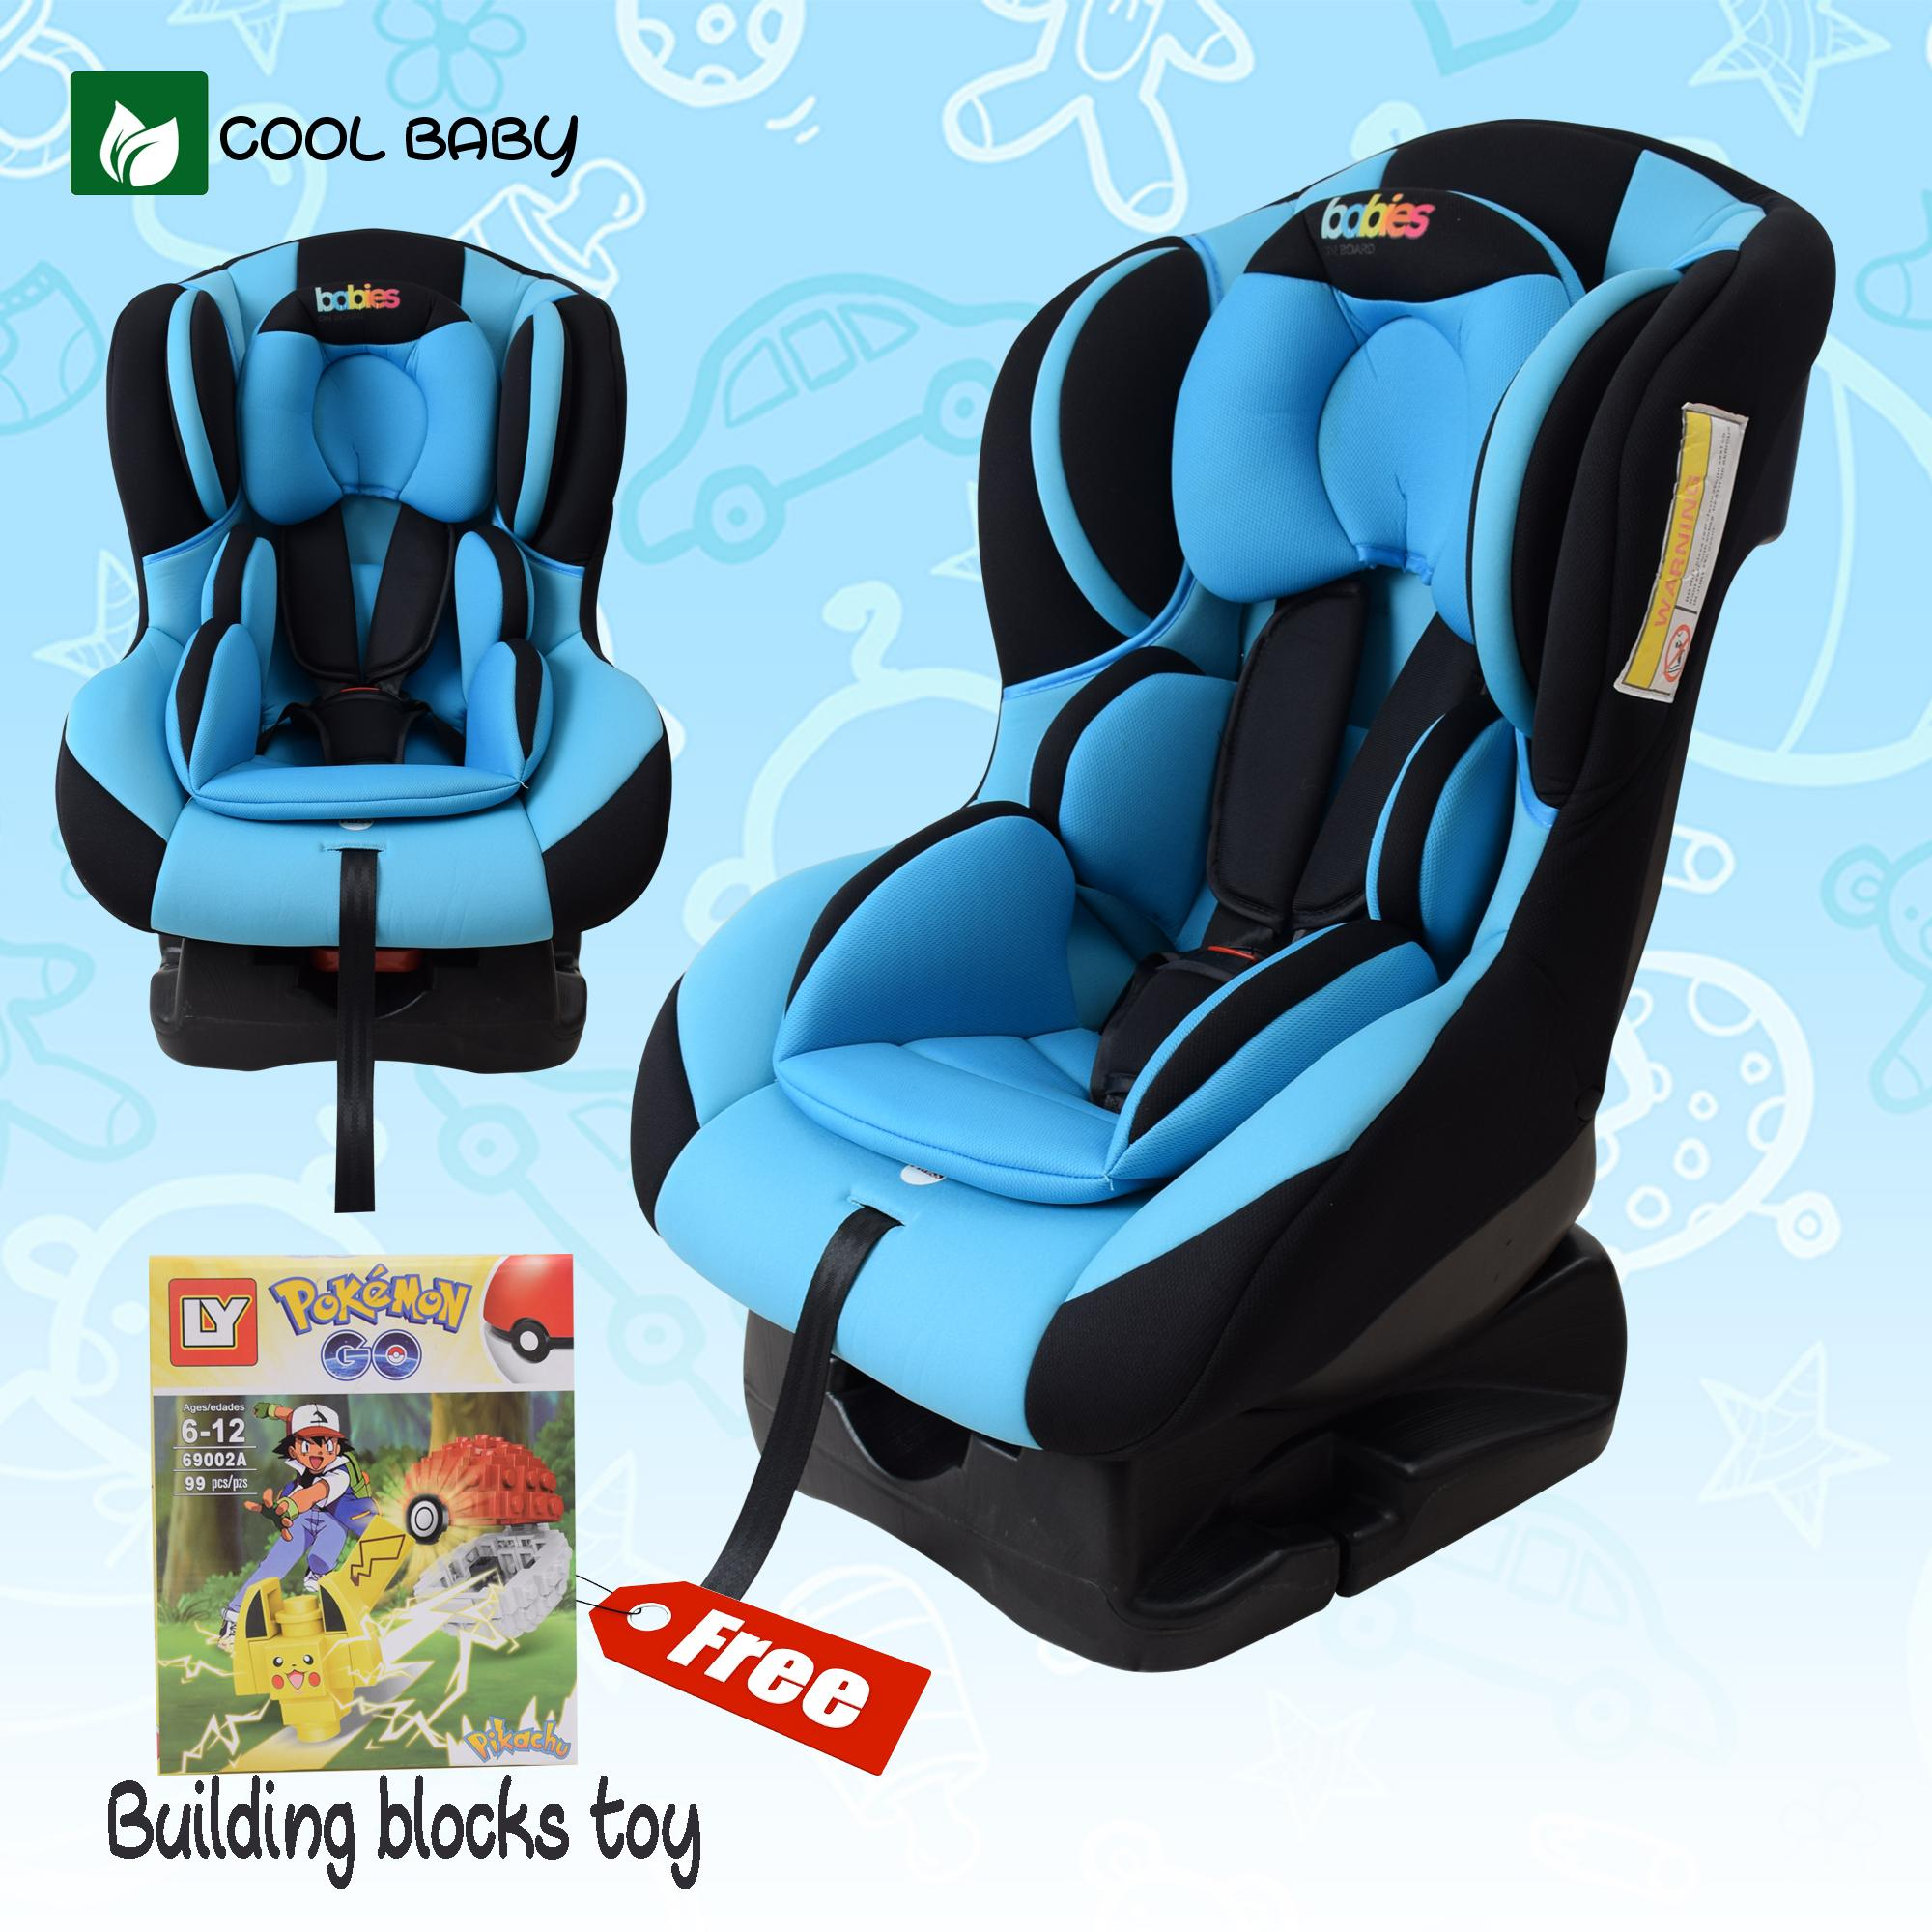 738e148c3 Baby Car Seat for sale - Car Seat for Baby online brands